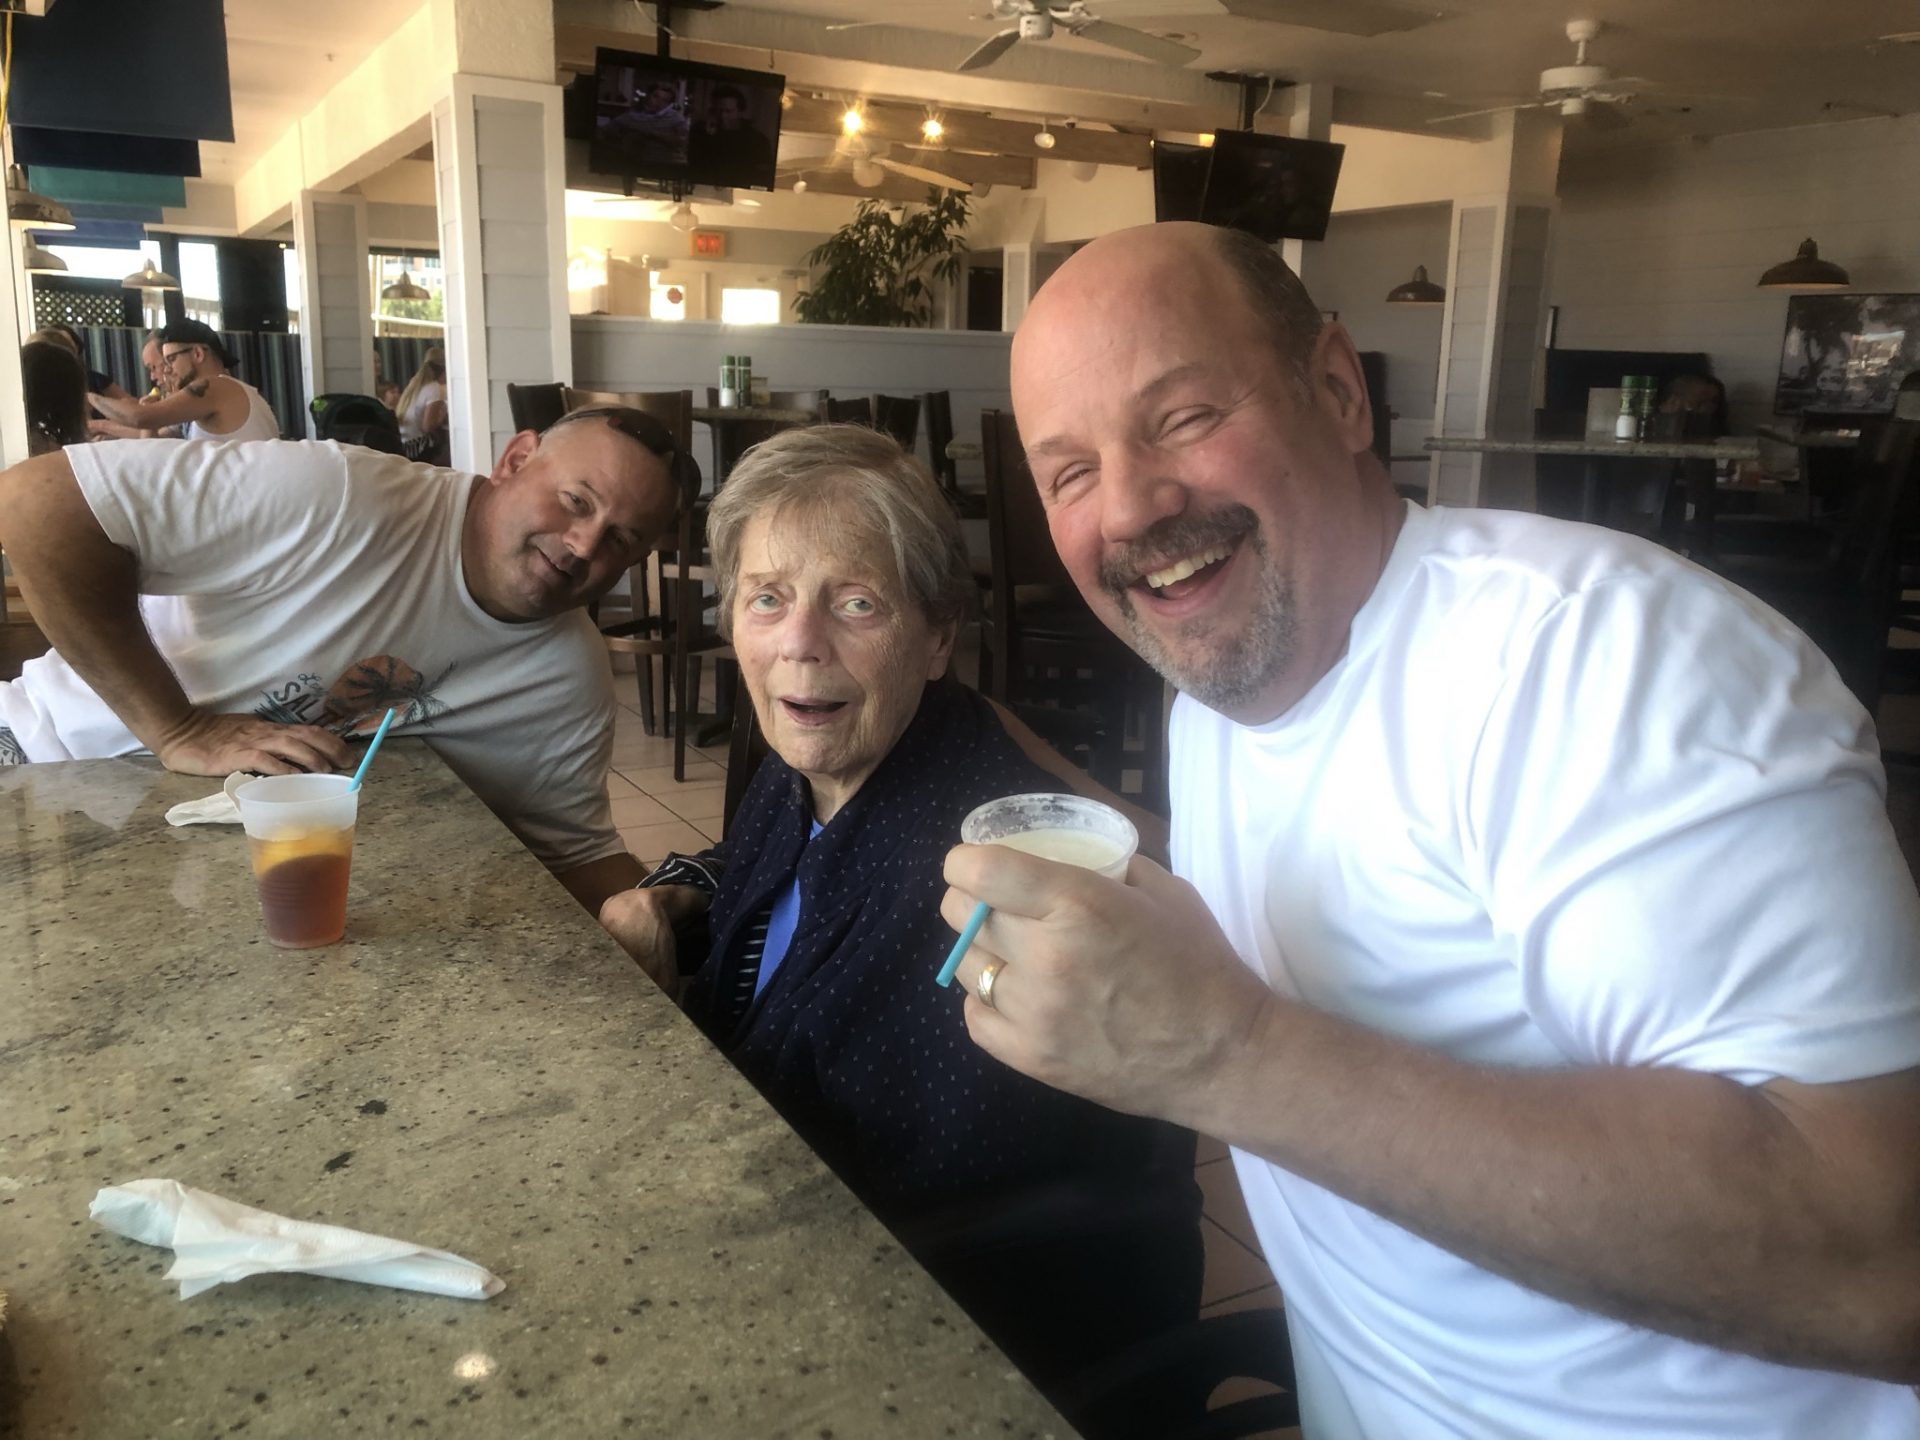 This was a nice time taking her to the beach and partying with hers boys. Phil was taking the picture.  We enjoyed this day together. Marty and Mickey did an amazing job taking care of our mom during the time she was a Floridian!